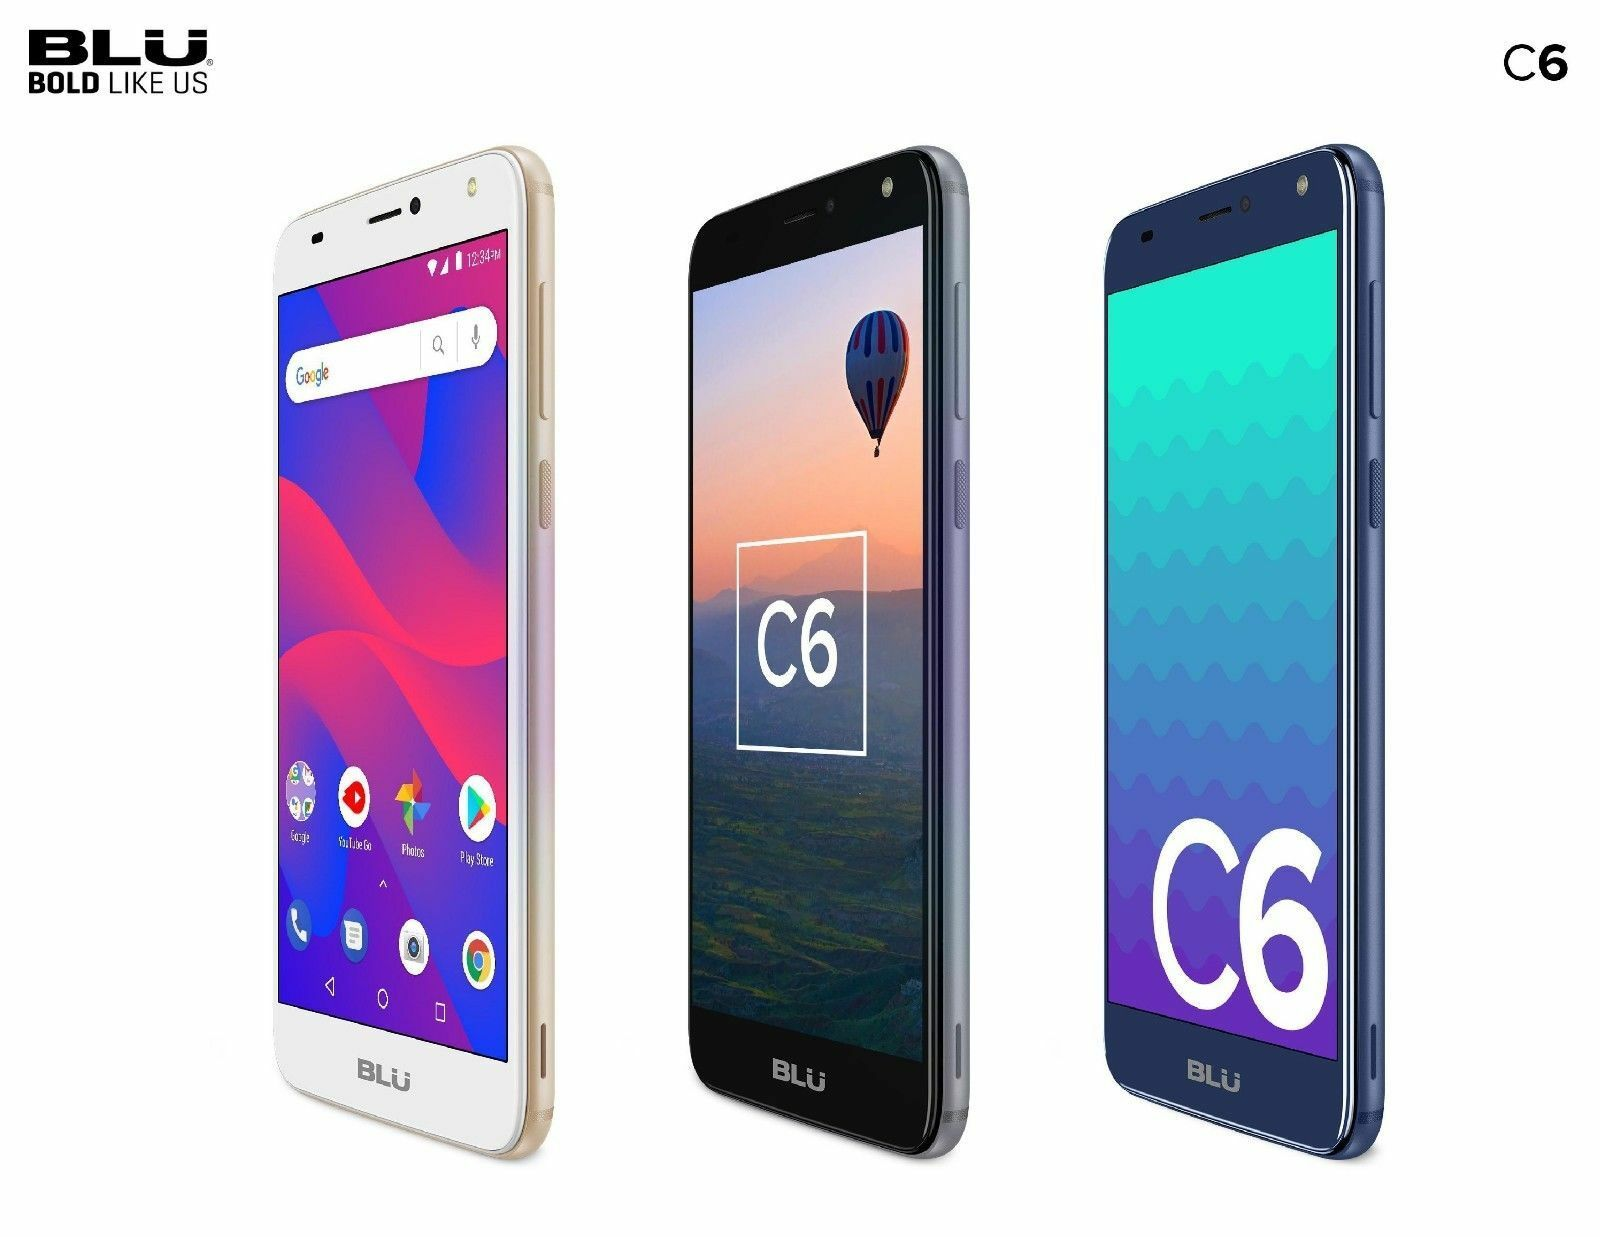 Android Phone - Blu C6 Unlocked Cell Phone 5.5'' Display 16GB/1GB ROM Android V.8.1 Oreo